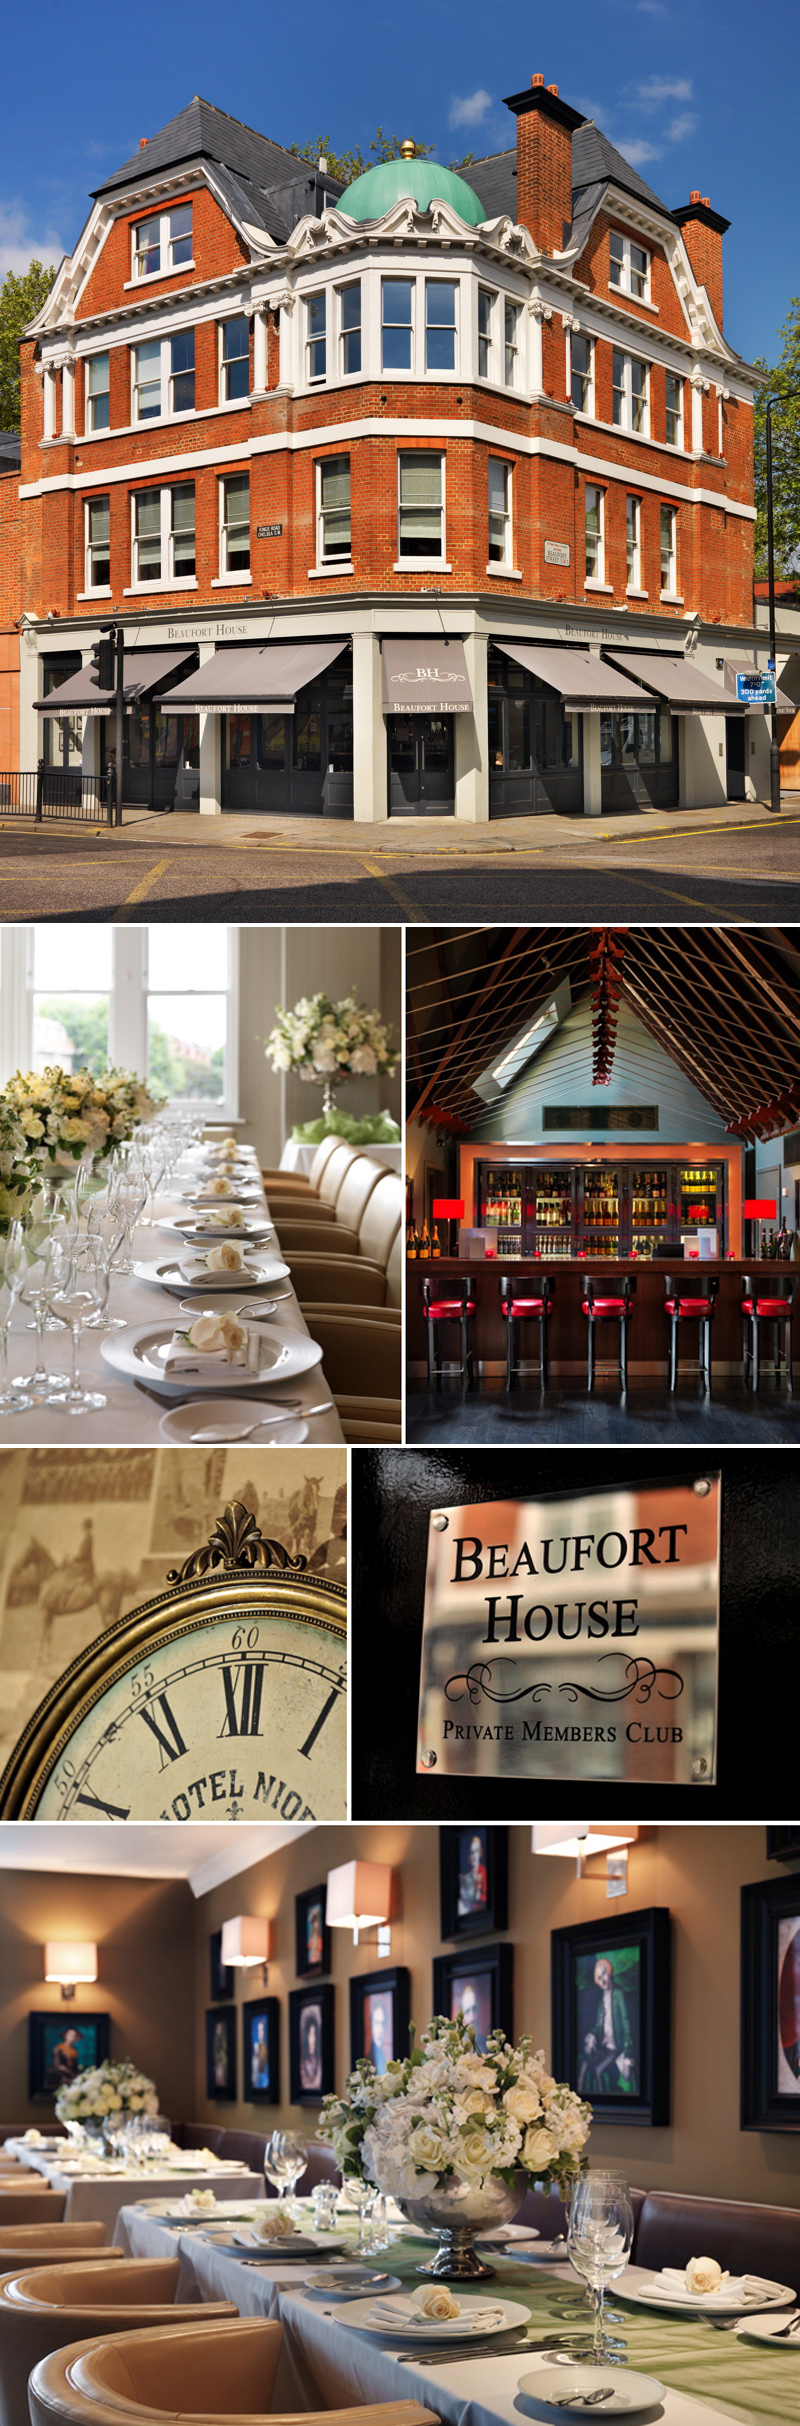 Coco Wedding Venues - Coco Collection - Beaufort House, London.